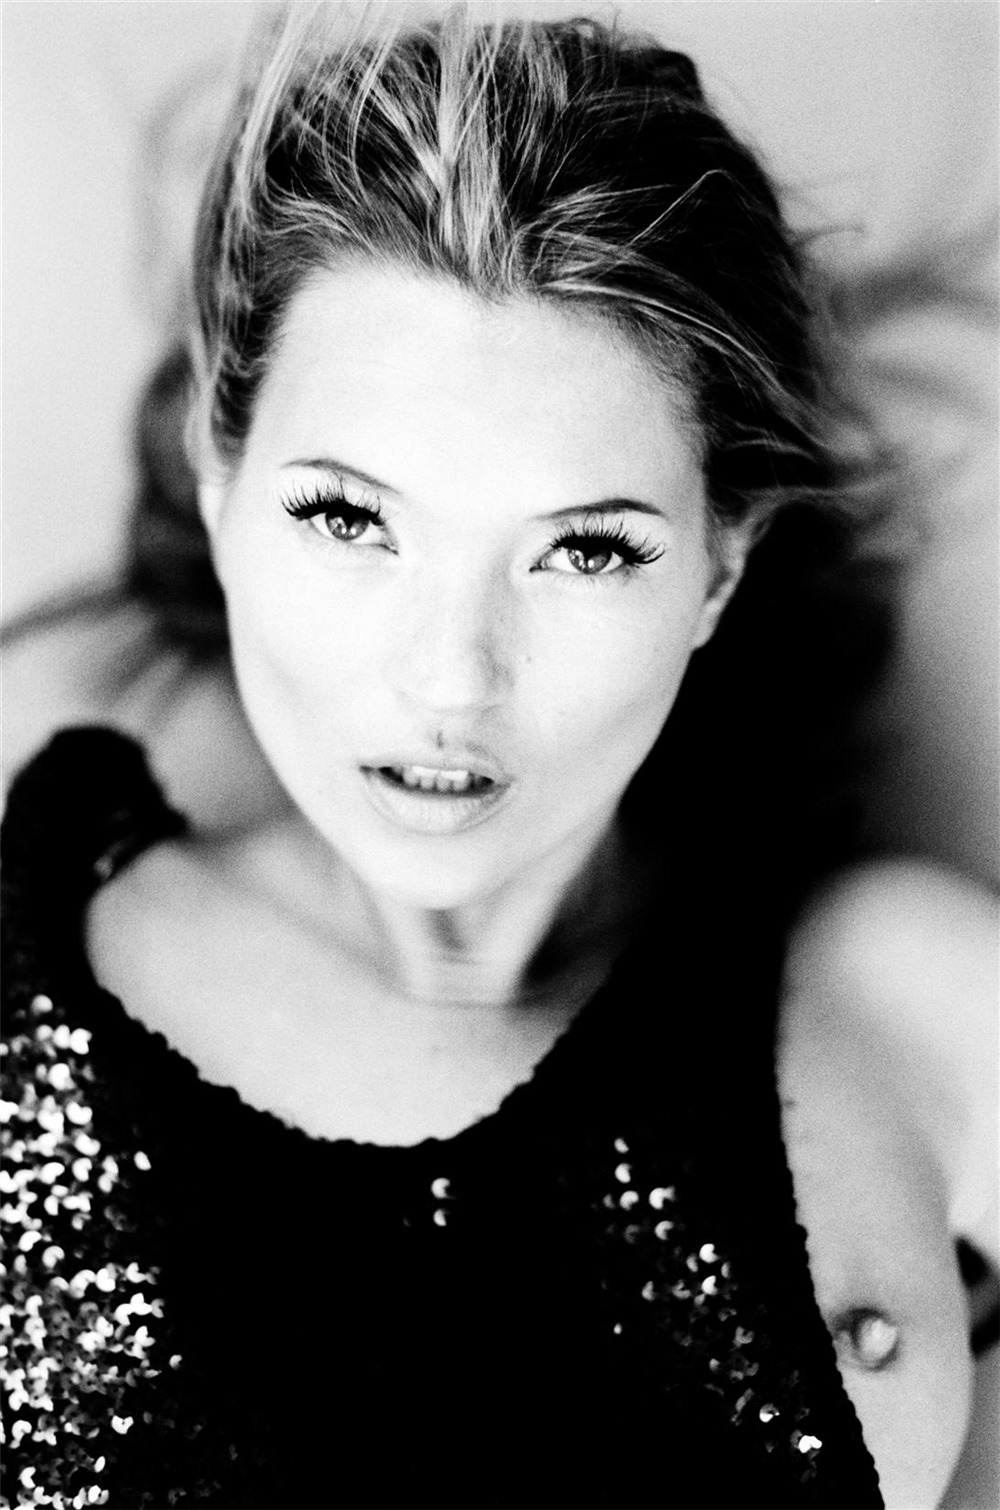 Kate Moss by Ellen von Unwerth (via sexintelligent)